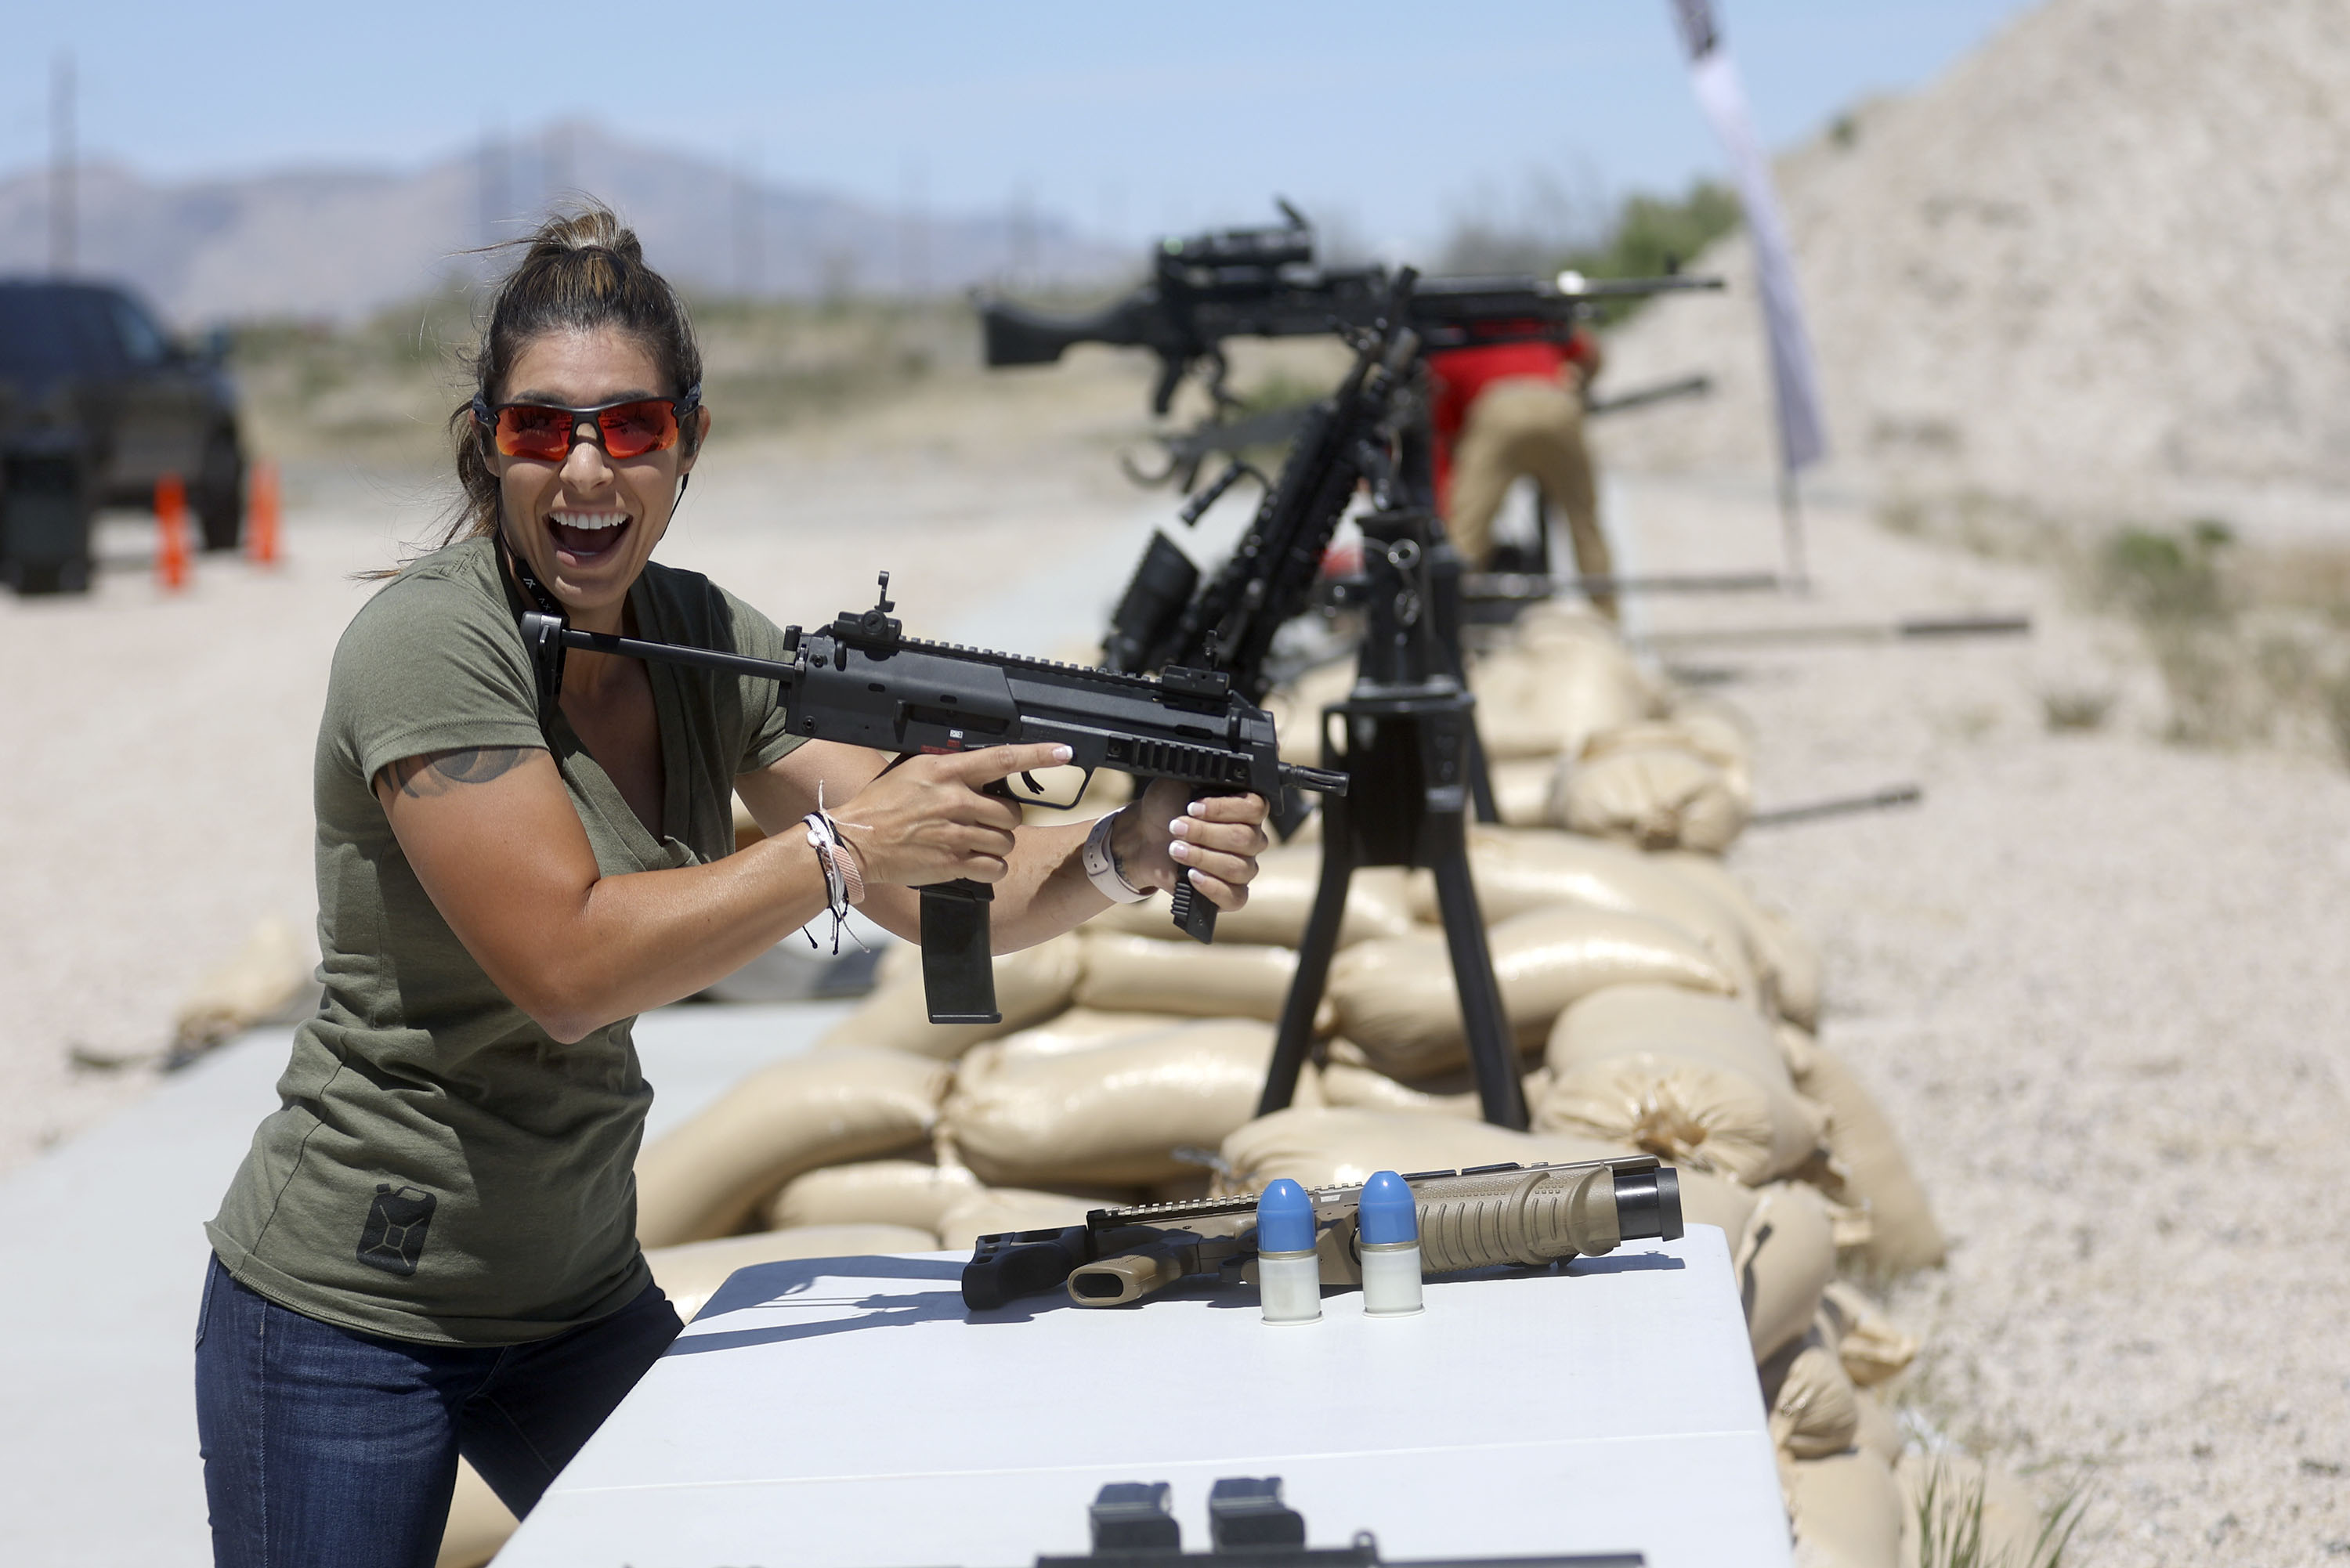 Michelle Viscusi reacts after firing a Heckler & Koch MP7 during the filming of a promotional video for a TacGas client.